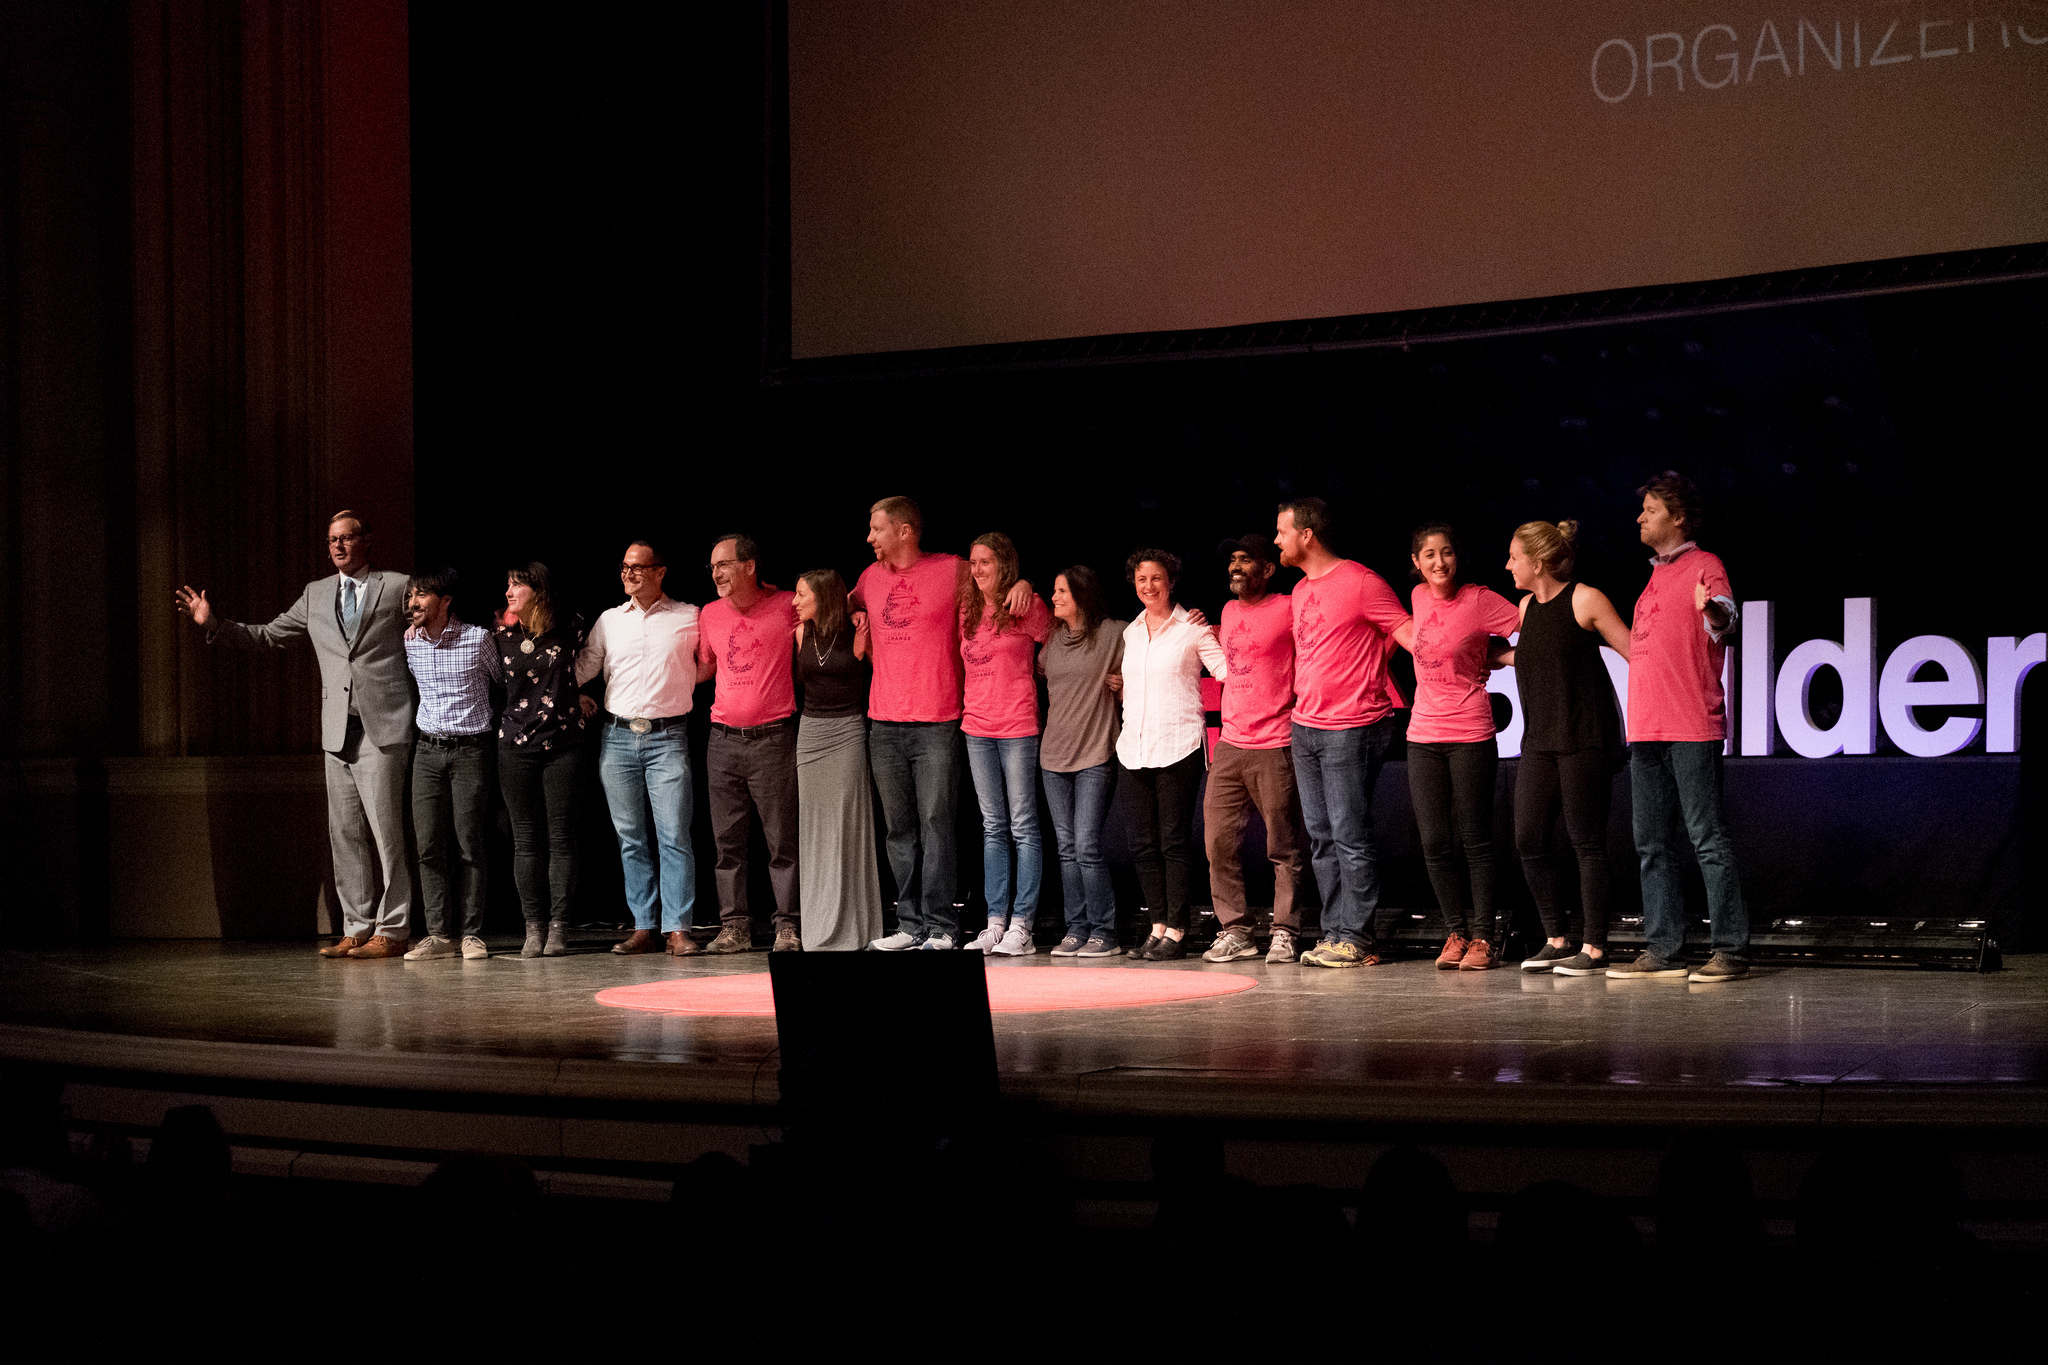 tedxboulder-team-colorado.jpg#asset:908